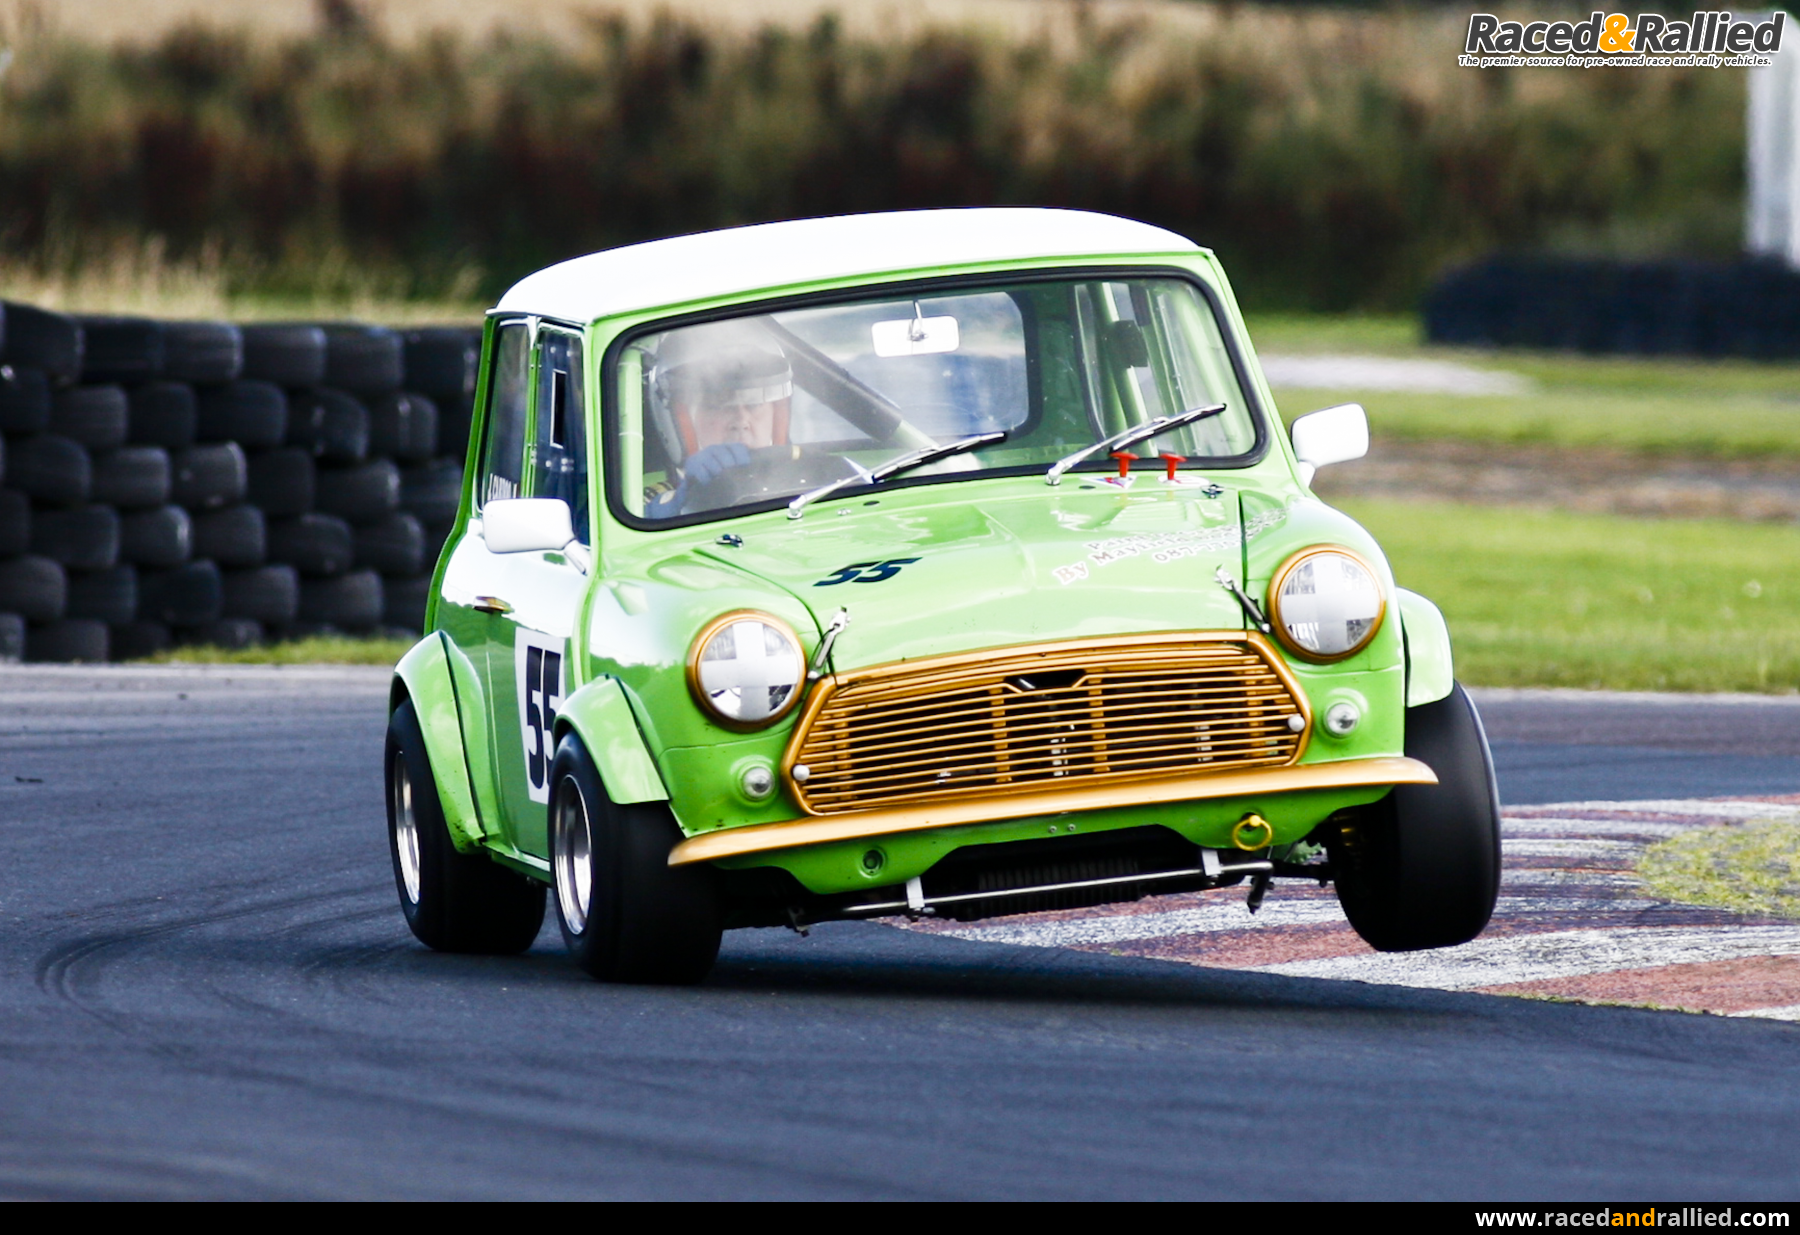 Mini Race Car | Race Cars for sale at Raced & Rallied | rally cars ...